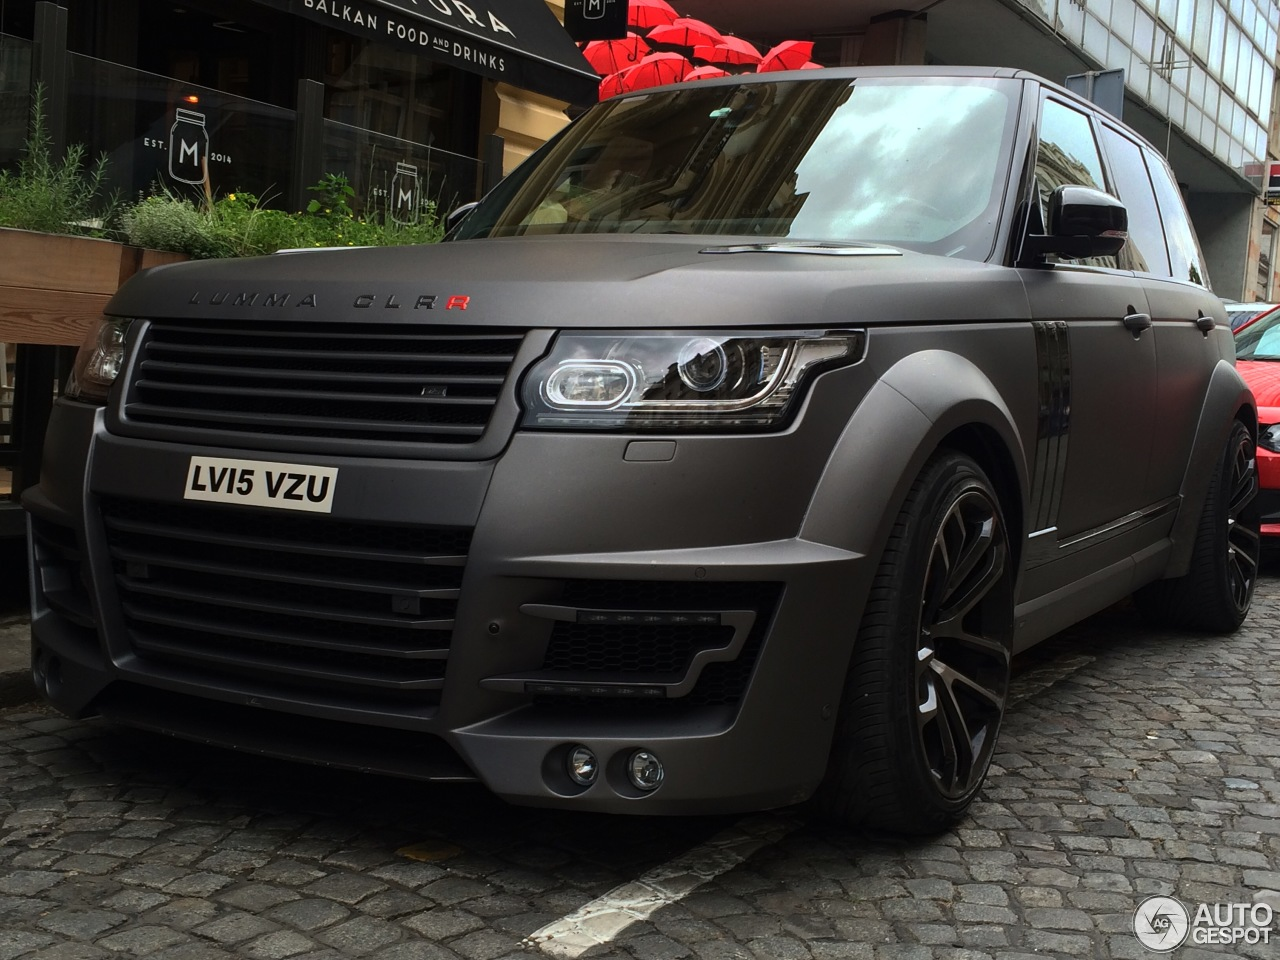 Land Rover Range Rover Lumma Clr R 26 May 2016 Autogespot